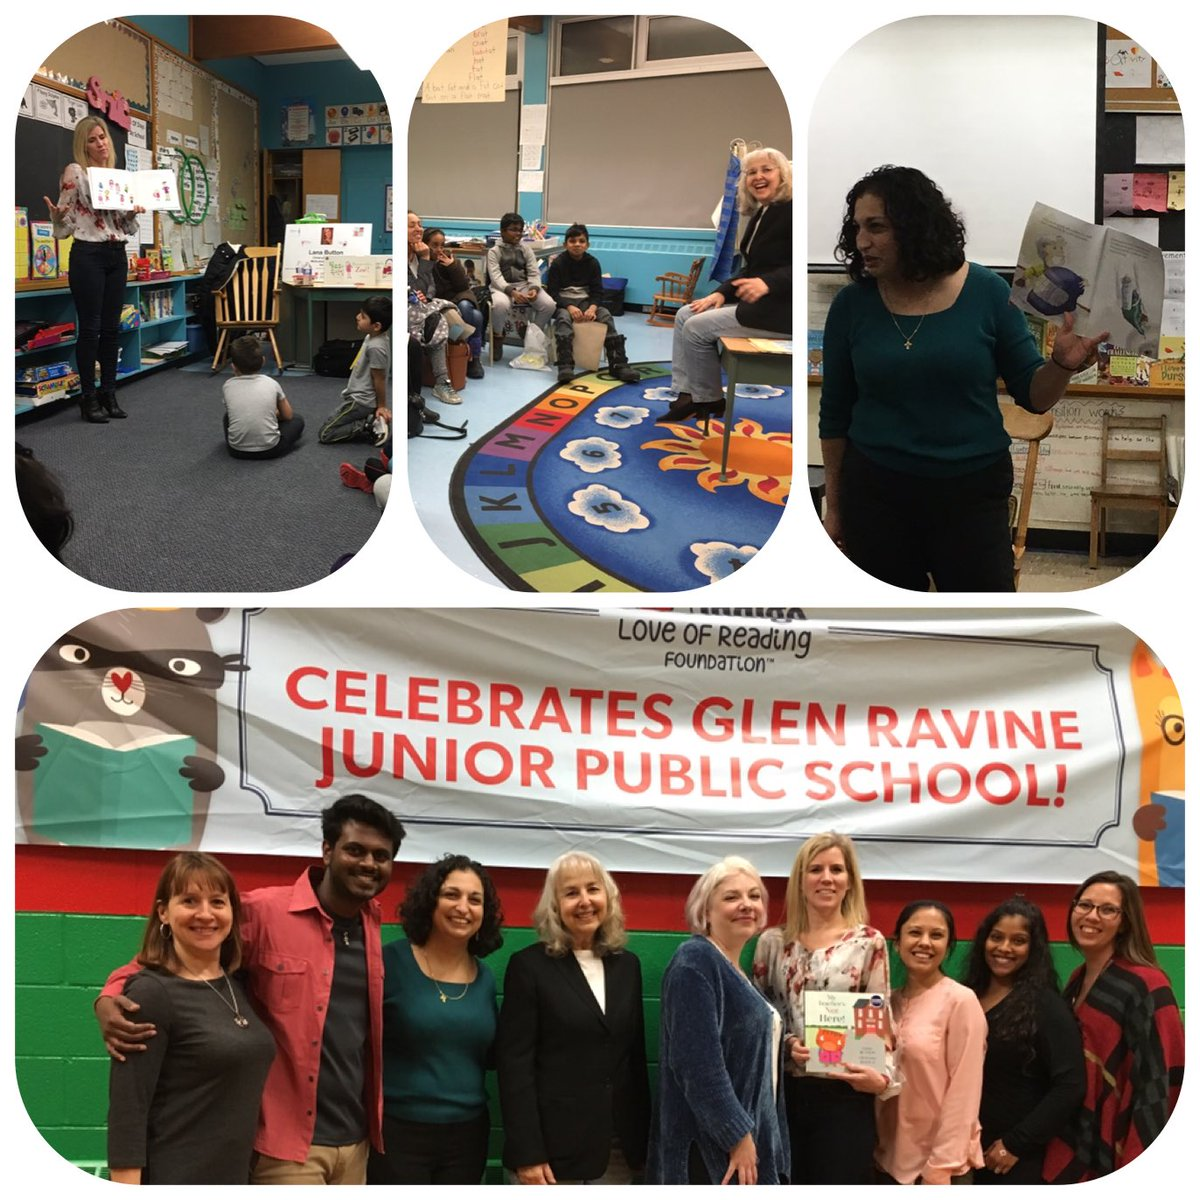 📚@GlenRavineJrPS celebrates  Family Literacy Night with our community. Thank you @Indigo_YandE our host store @IndigoLOR for bringing authors Lana Button, Stella Partheniou Grasso & Lucy Falcone. What an amazing evening for all! @LC3_TDSB @schan_tdsb @dzervas_tdsb